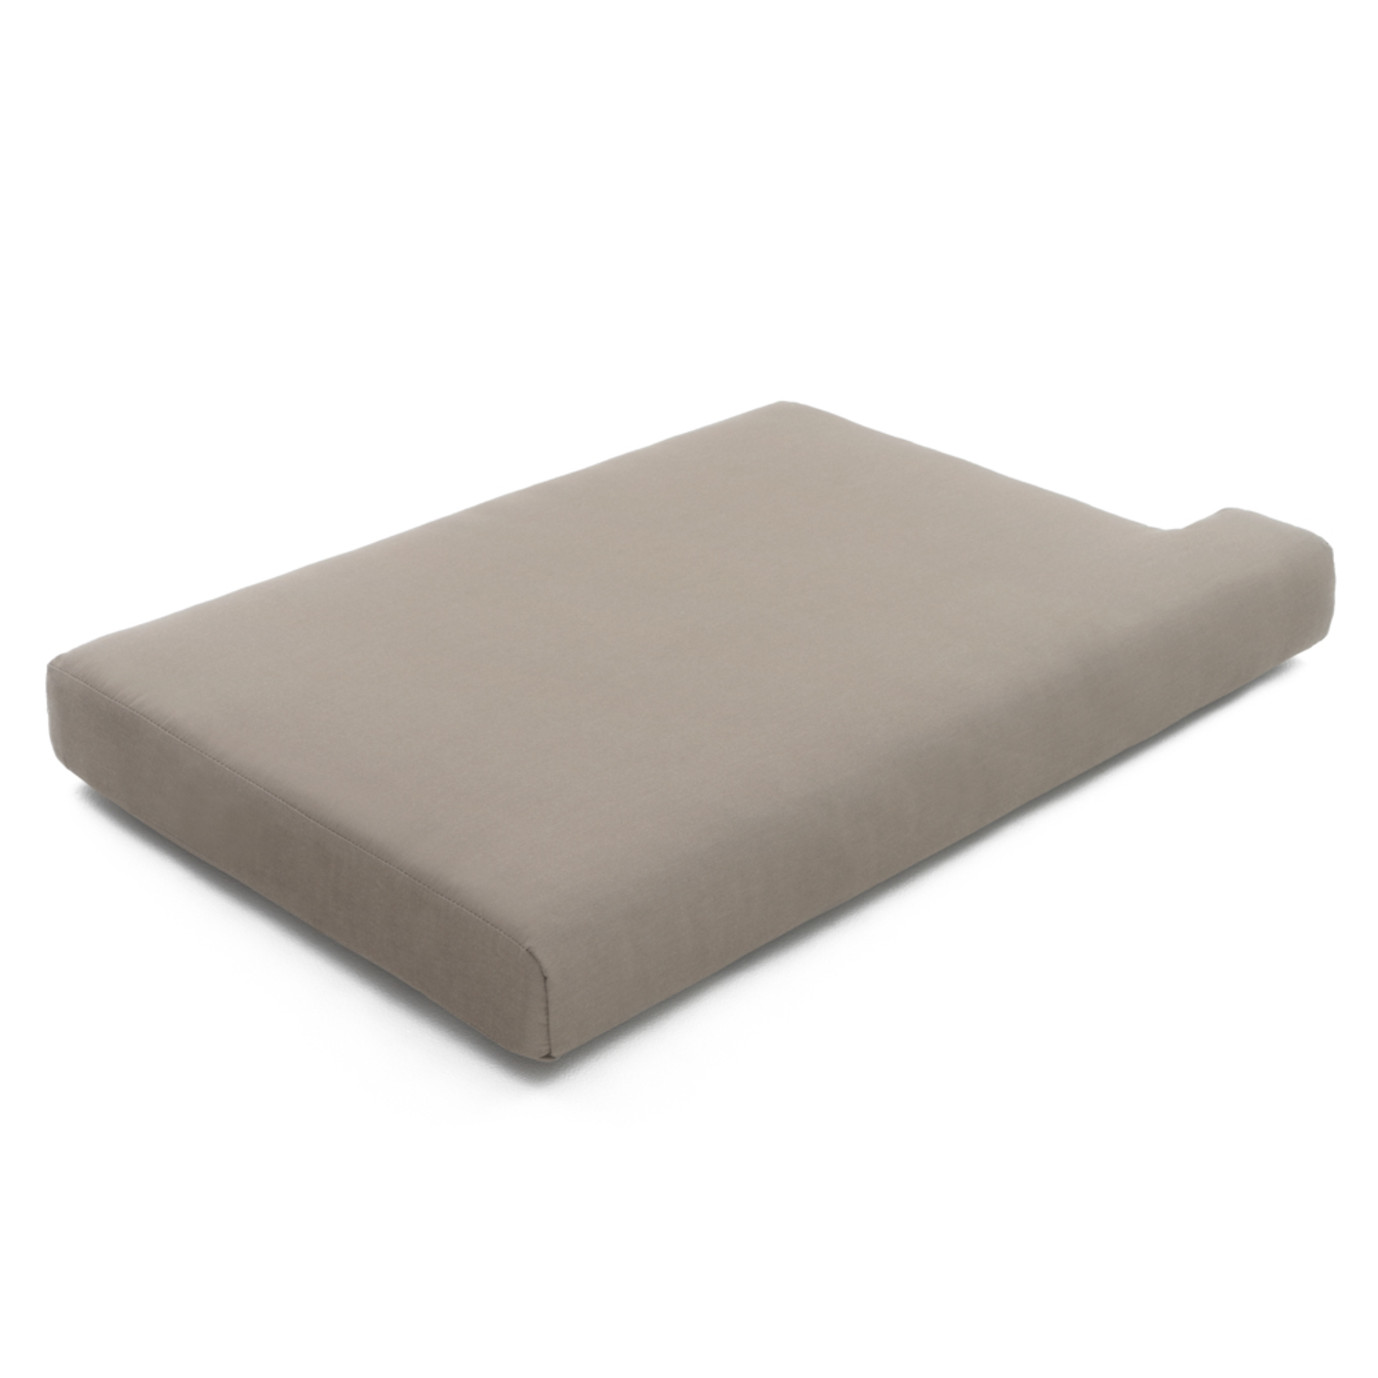 Portofino™ Comfort 96in Sofa Left Base Cushion - Kona Taupe